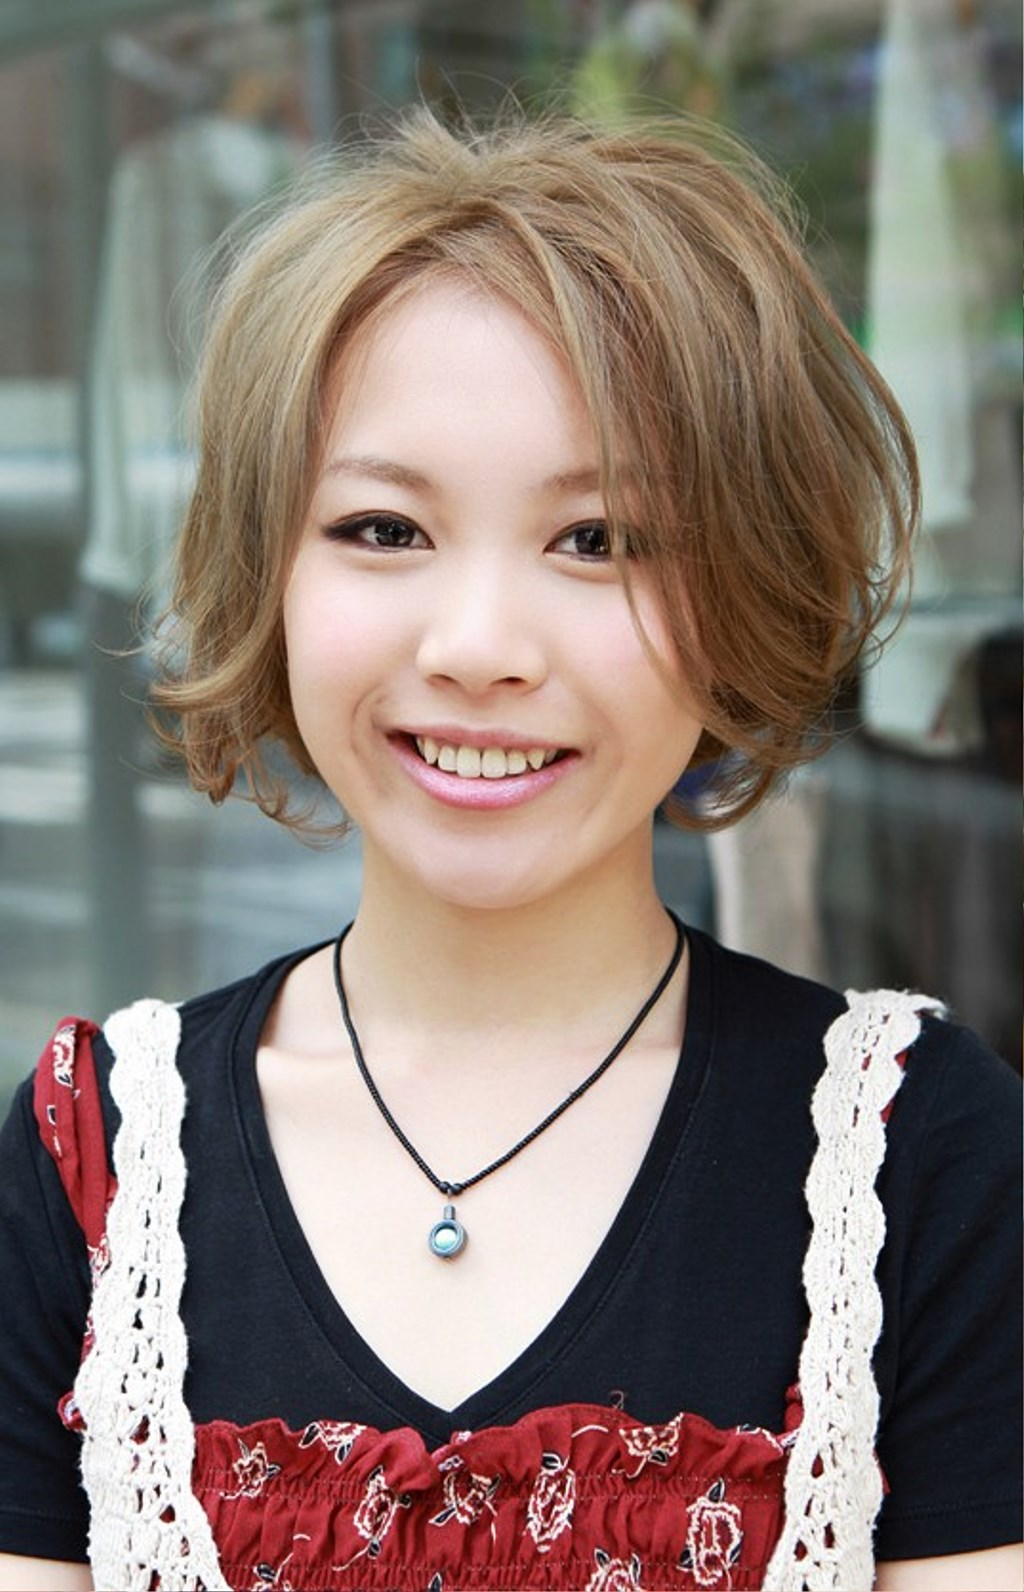 Wondrous Pictures Of Cute Short Japanese Bob Haircut For Girls Hairstyles For Men Maxibearus